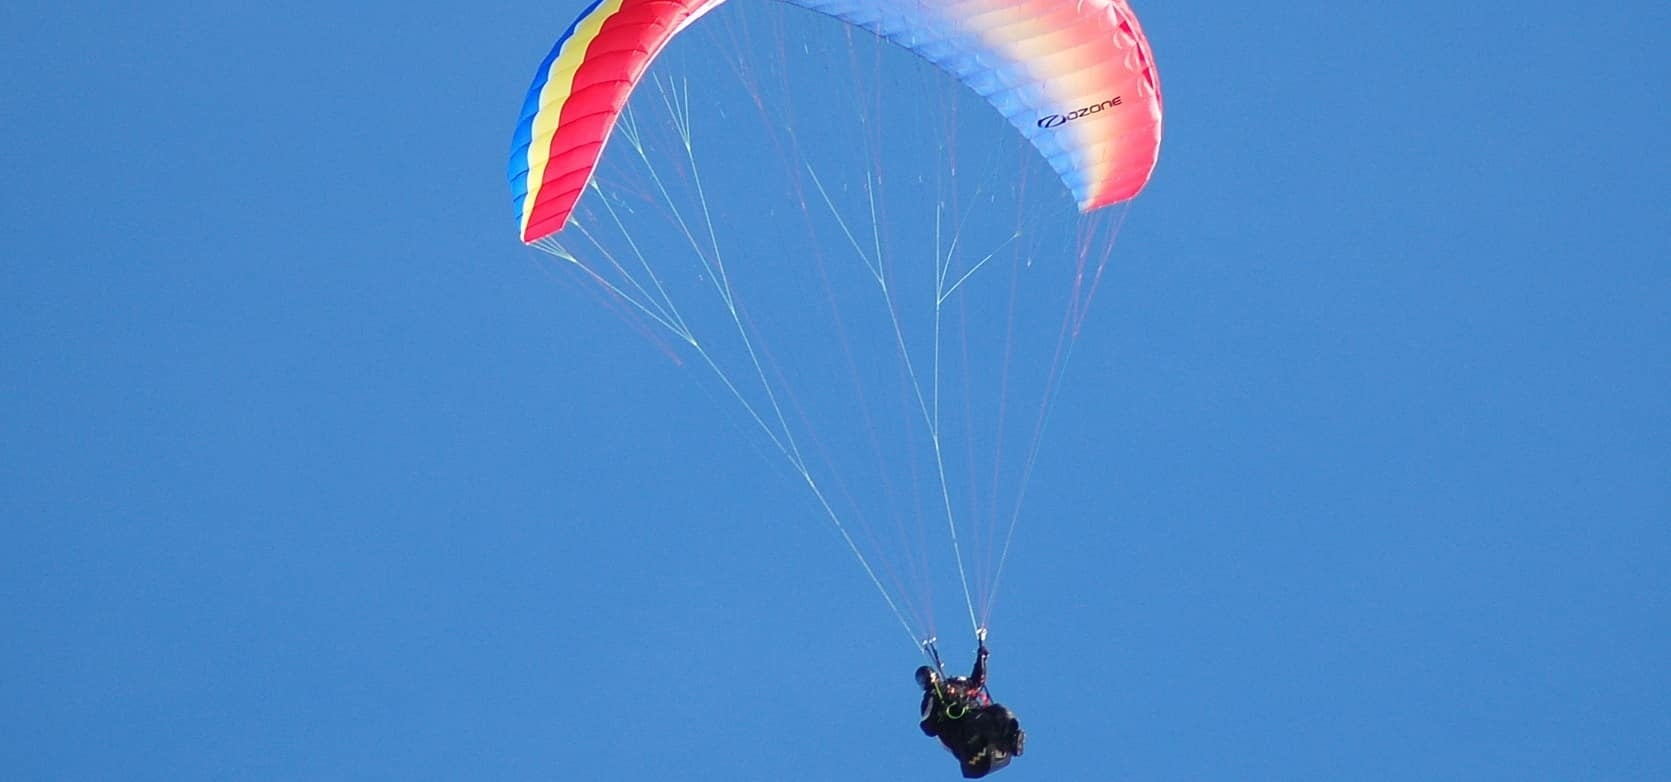 Paragliding Course Derbyshire - 1 Day Intro-4